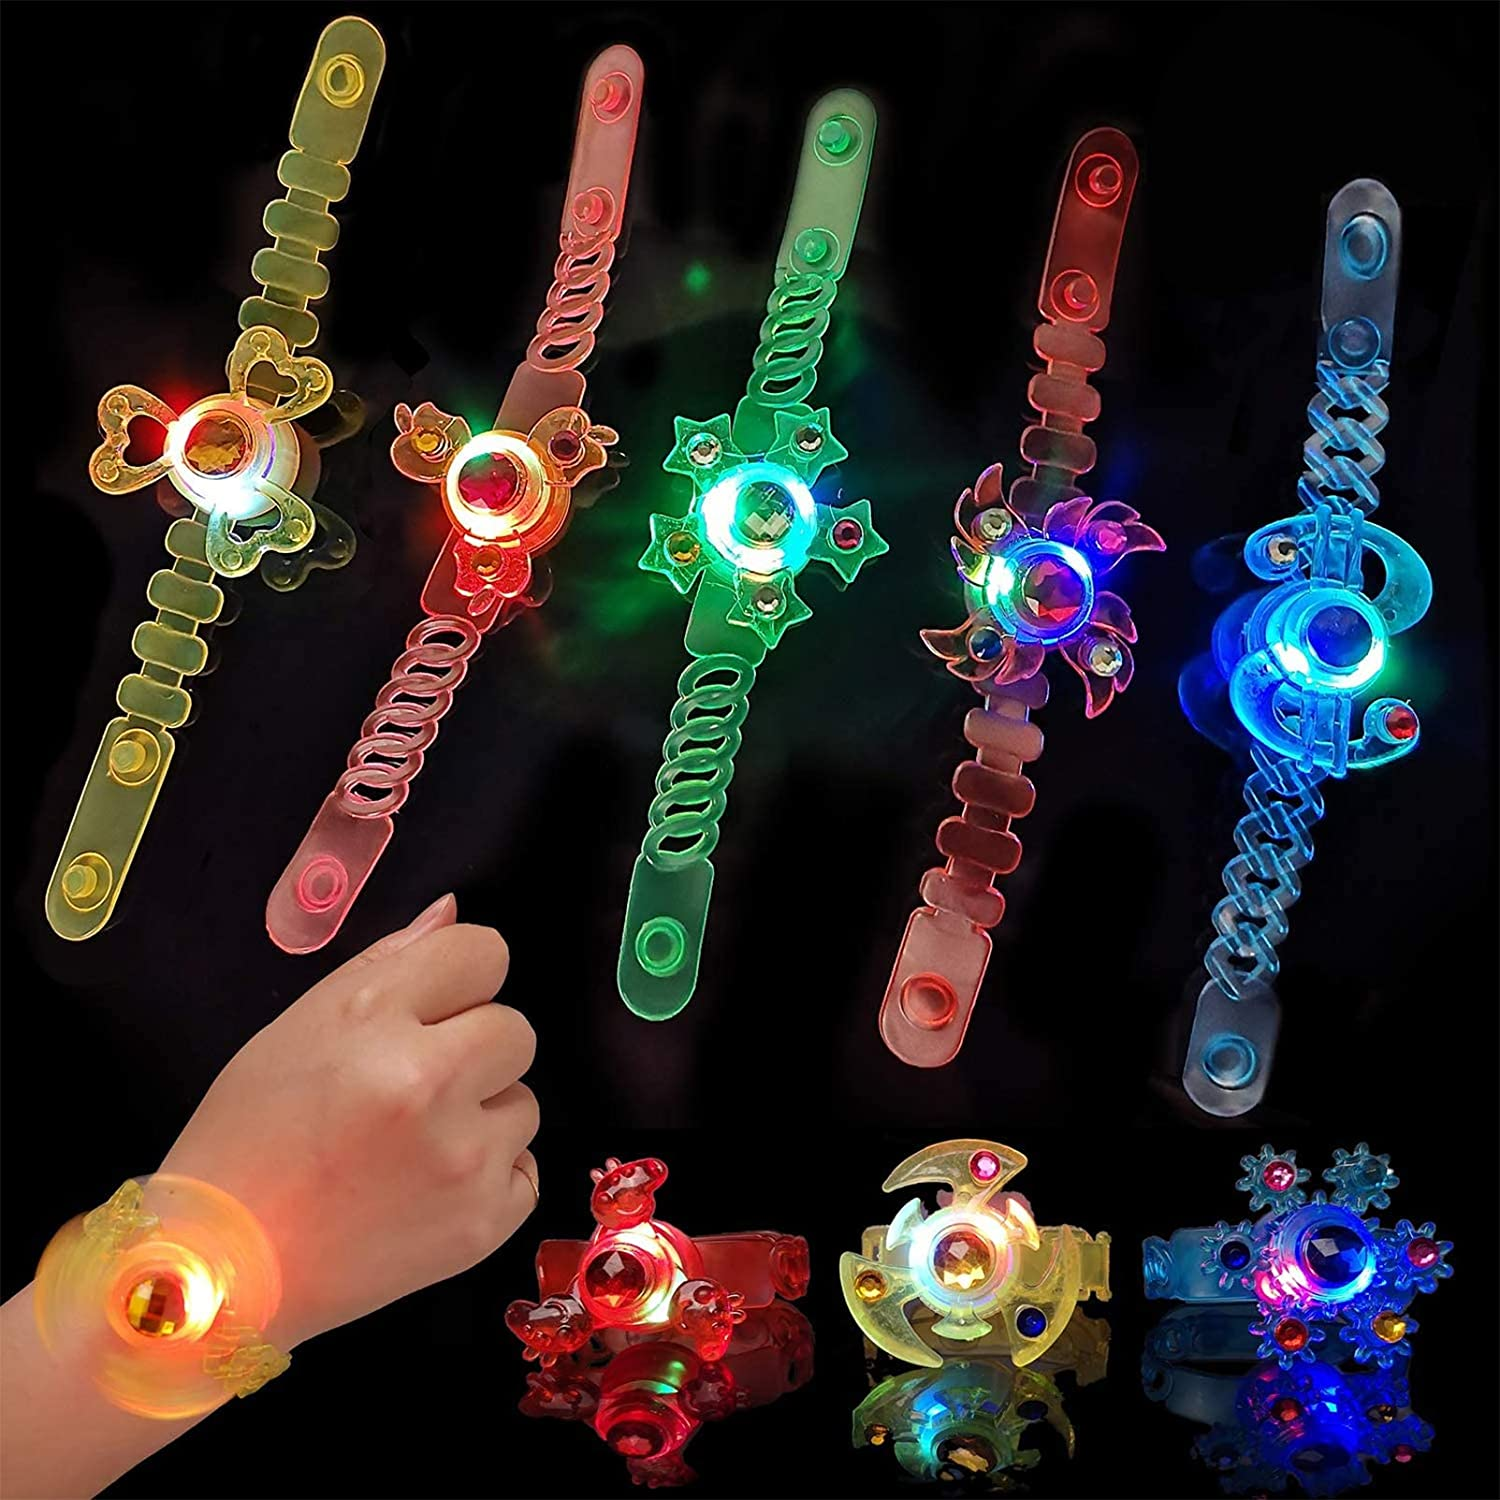 Party Favors for Kids 12 Pcs LED Light Up Bracelets Toys Glow in The Dark Party Supplies,Spin Glow Bracelets Party Birthday Easter Halloween Christmas Supplies